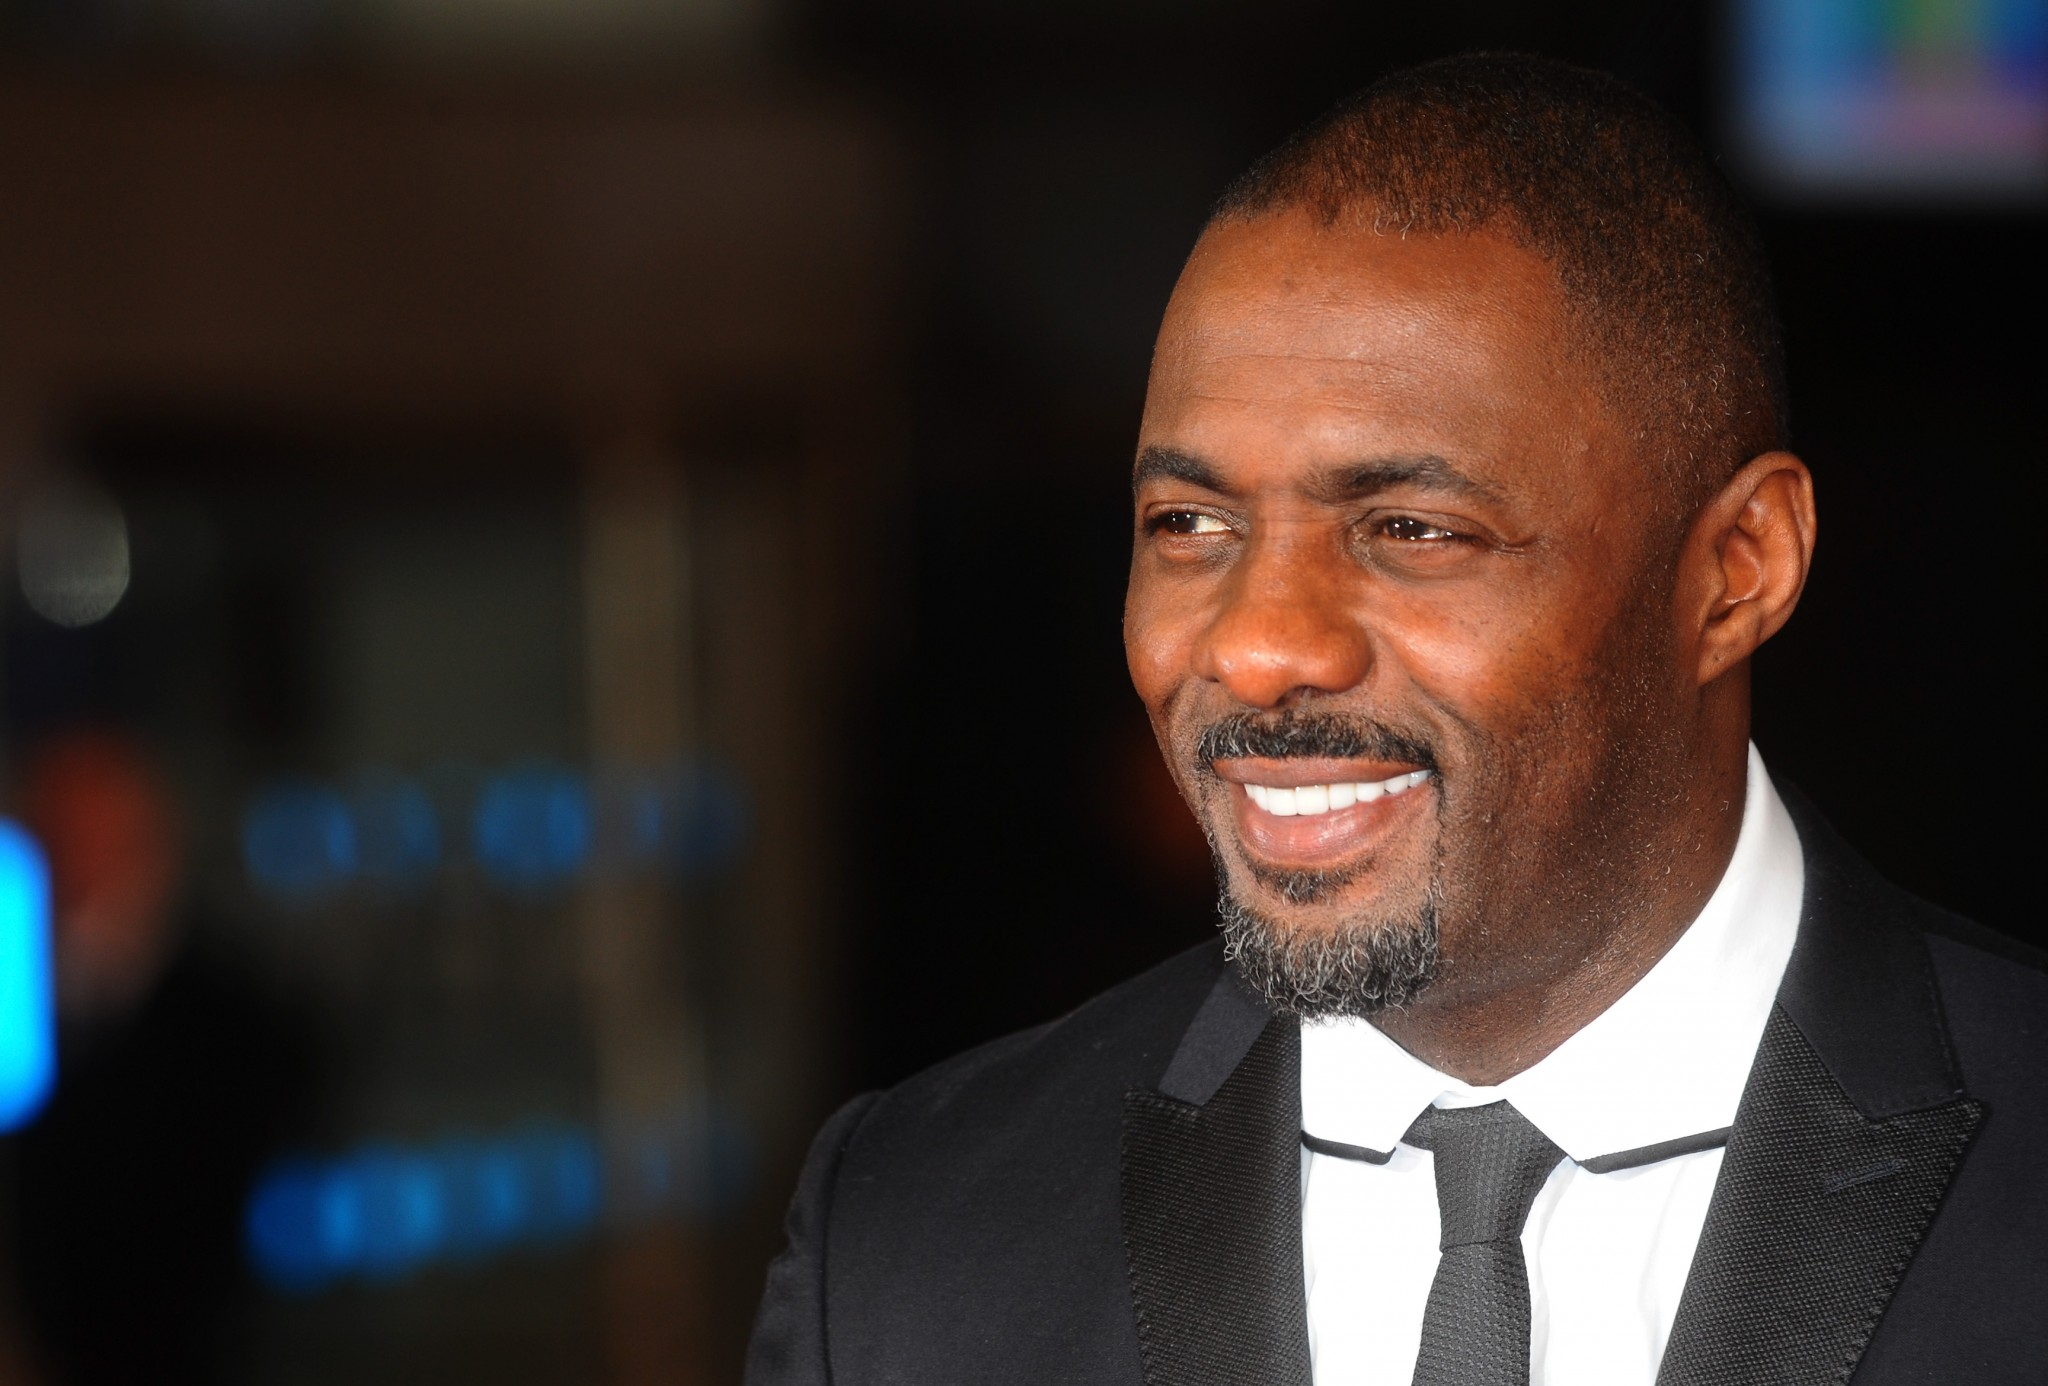 Idris Elba at the premiere for Mandela: Long Walk To Freedom